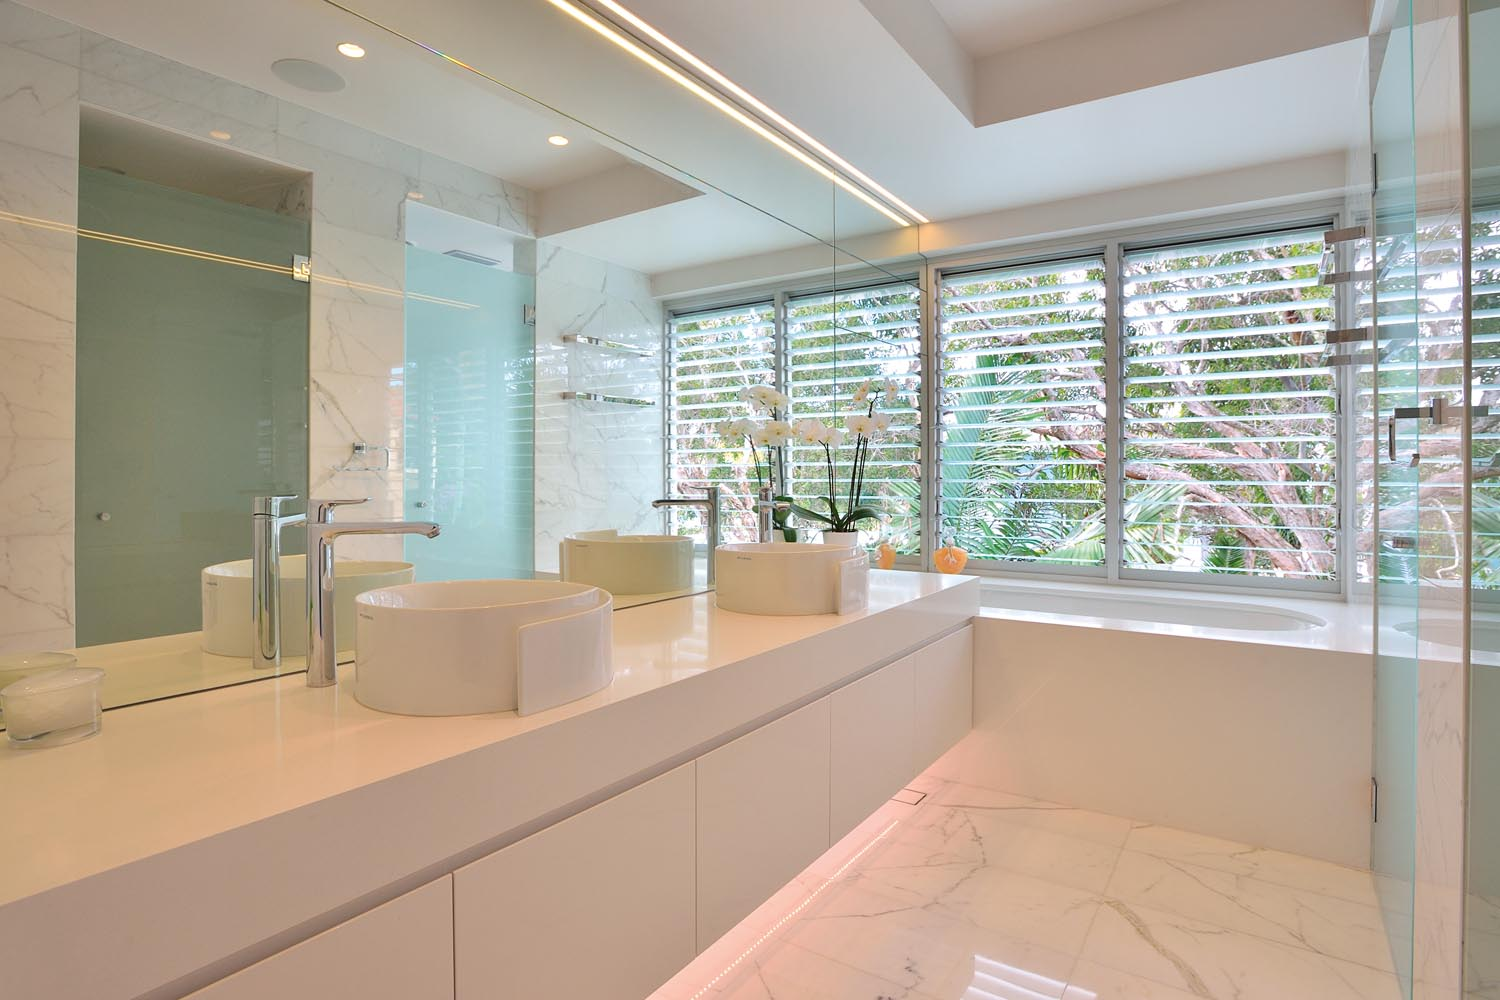 The white and stone theme is carried throughout the house to the bathroom